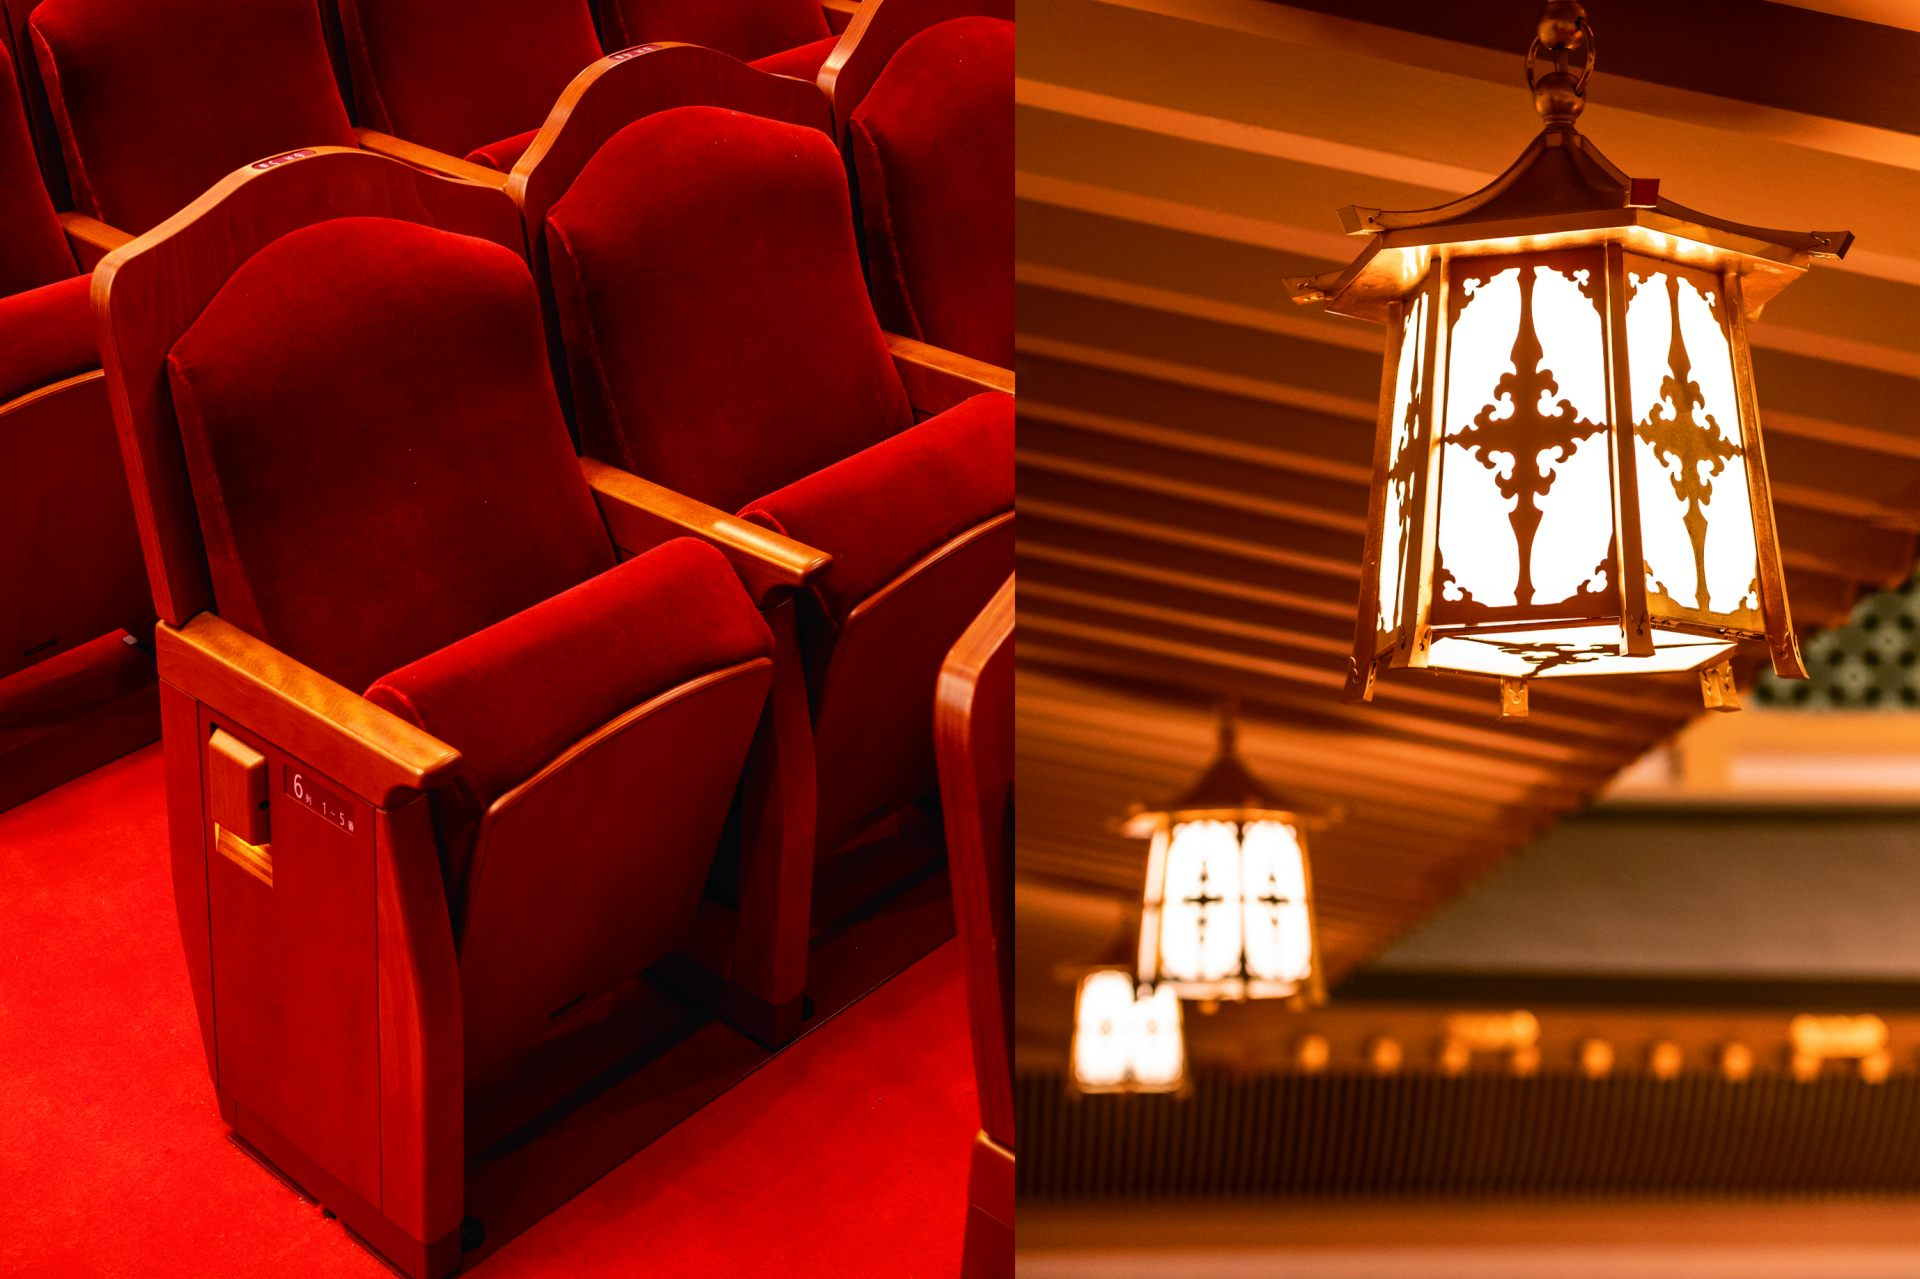 A theatre interior designed for ease of viewing and comfort. Watch out for the lighting fixtures and detailed designs as well.